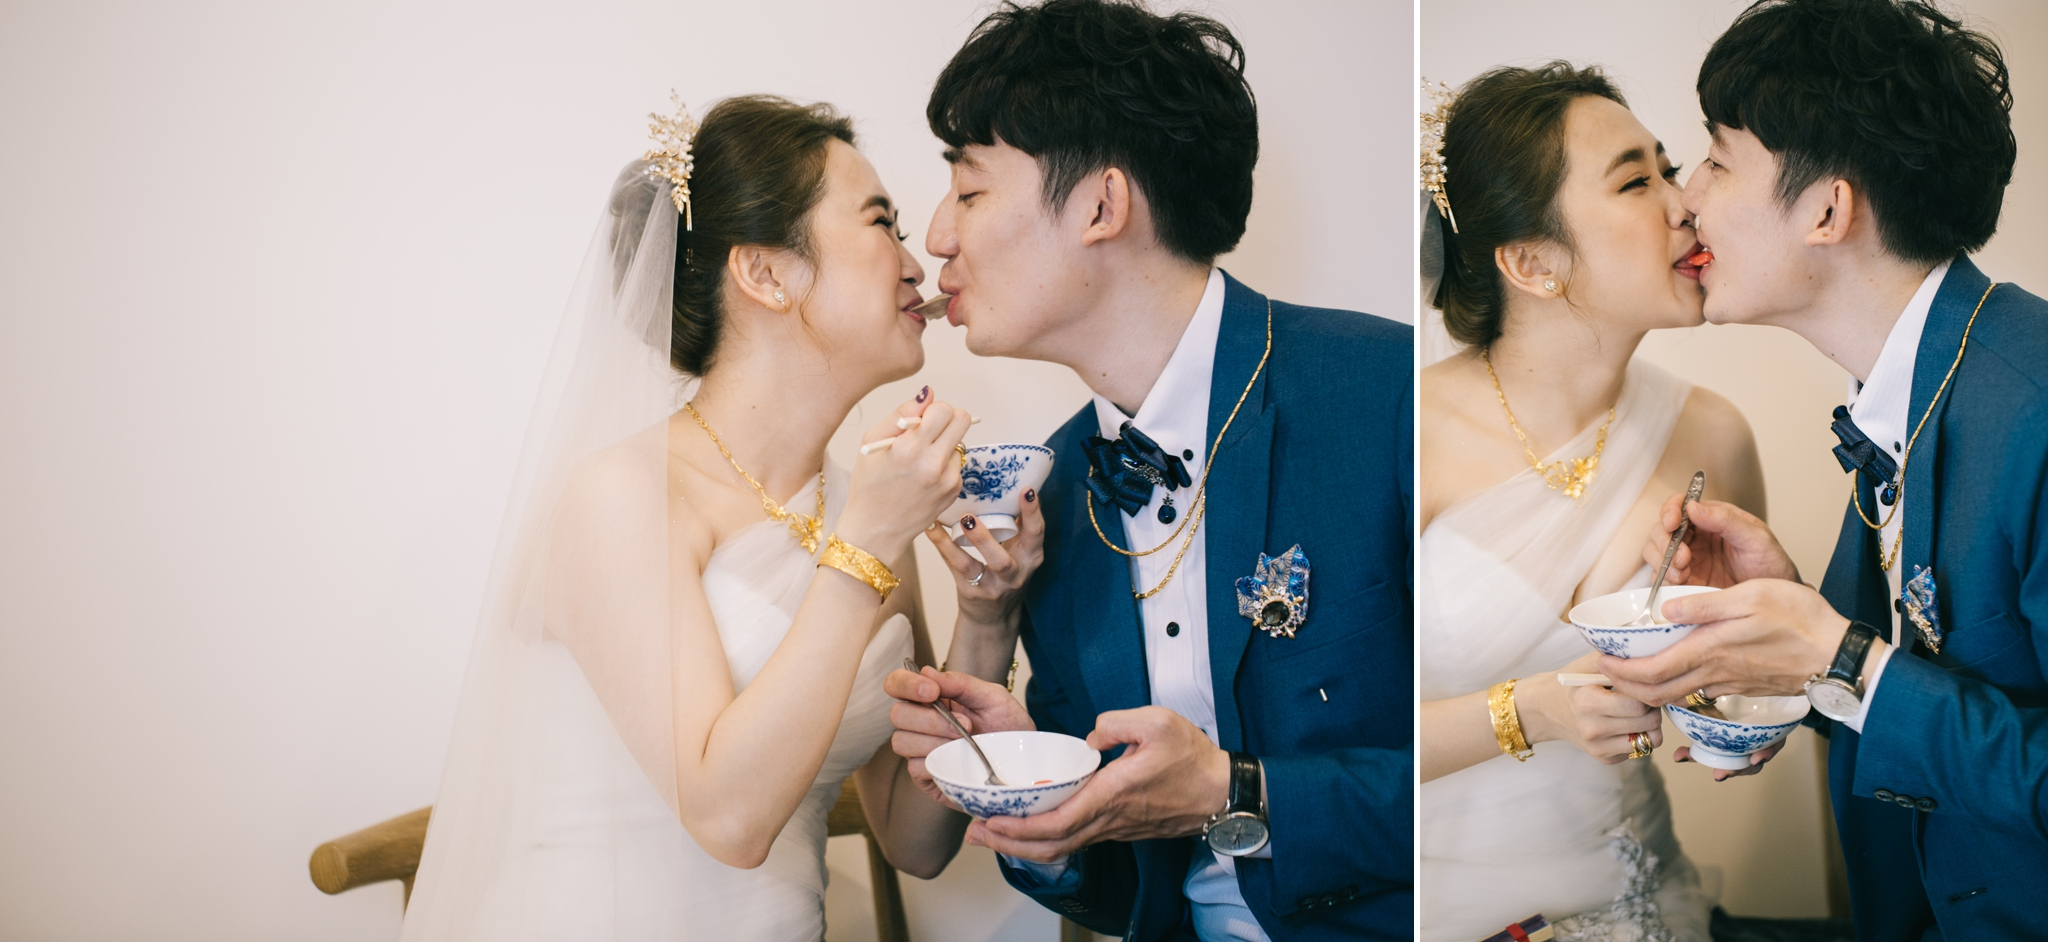 Keddy+Richard-wedding-新莊頤品飯店-135.jpg